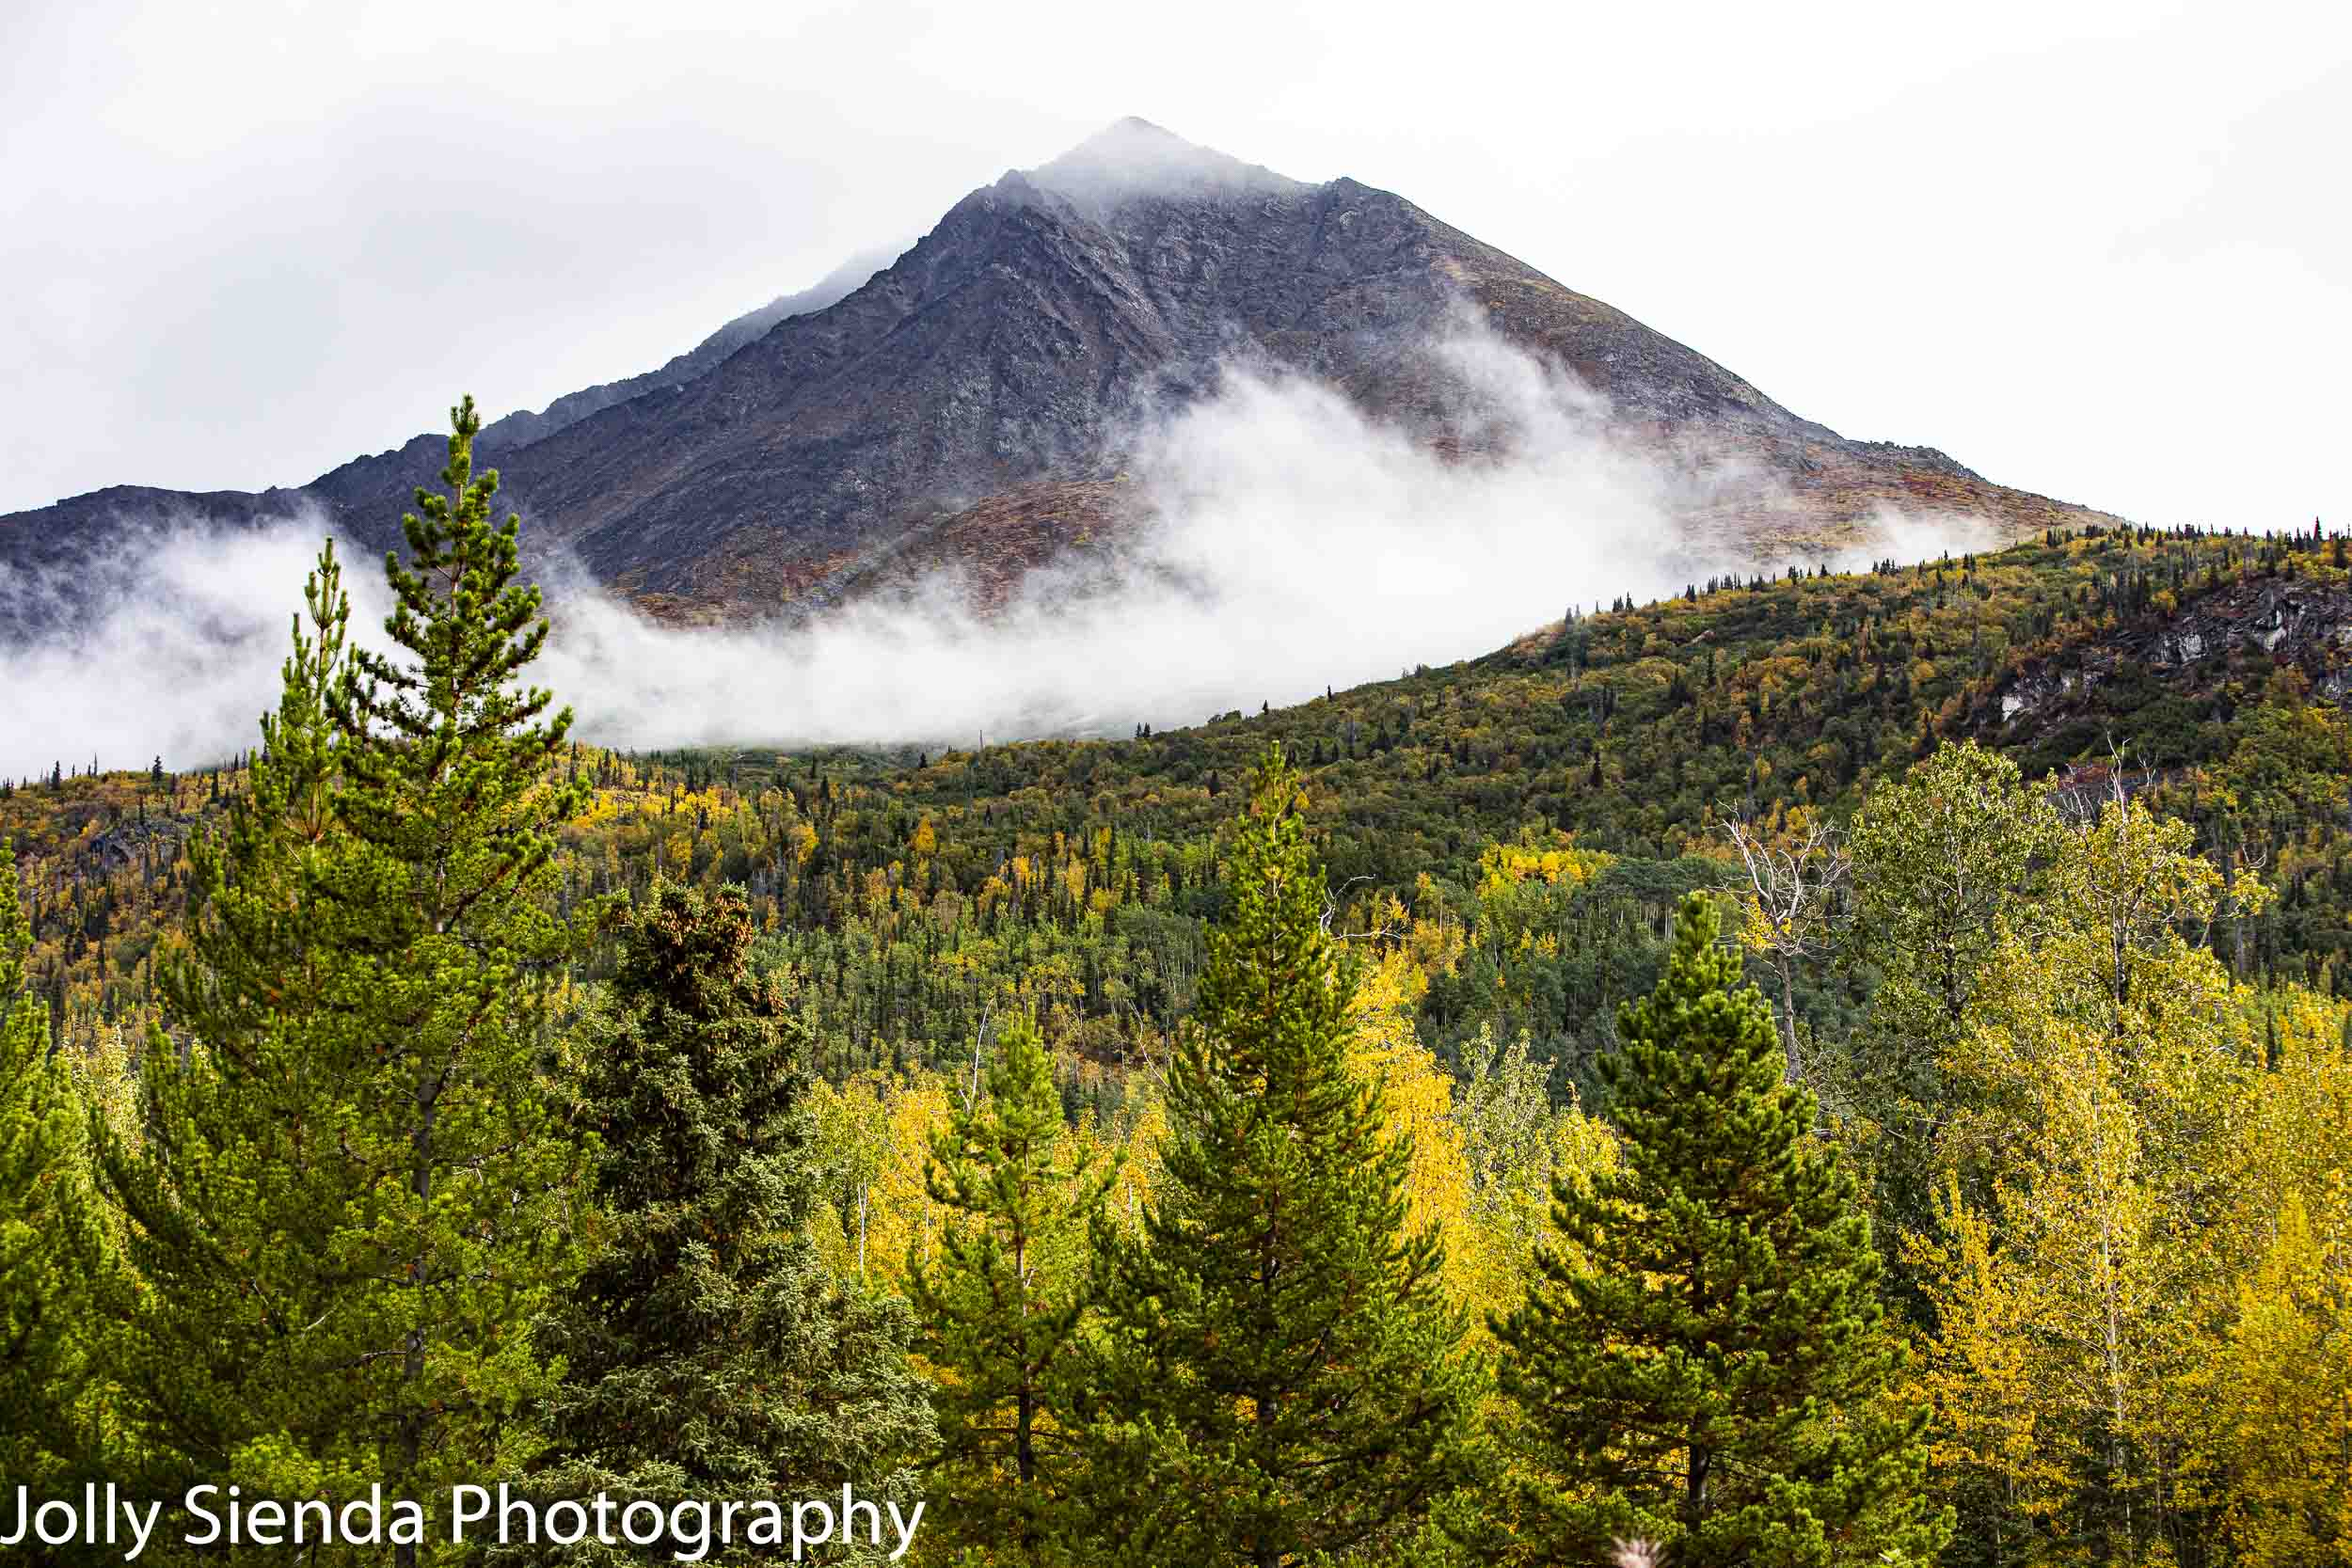 Autumn strikes Alaska early